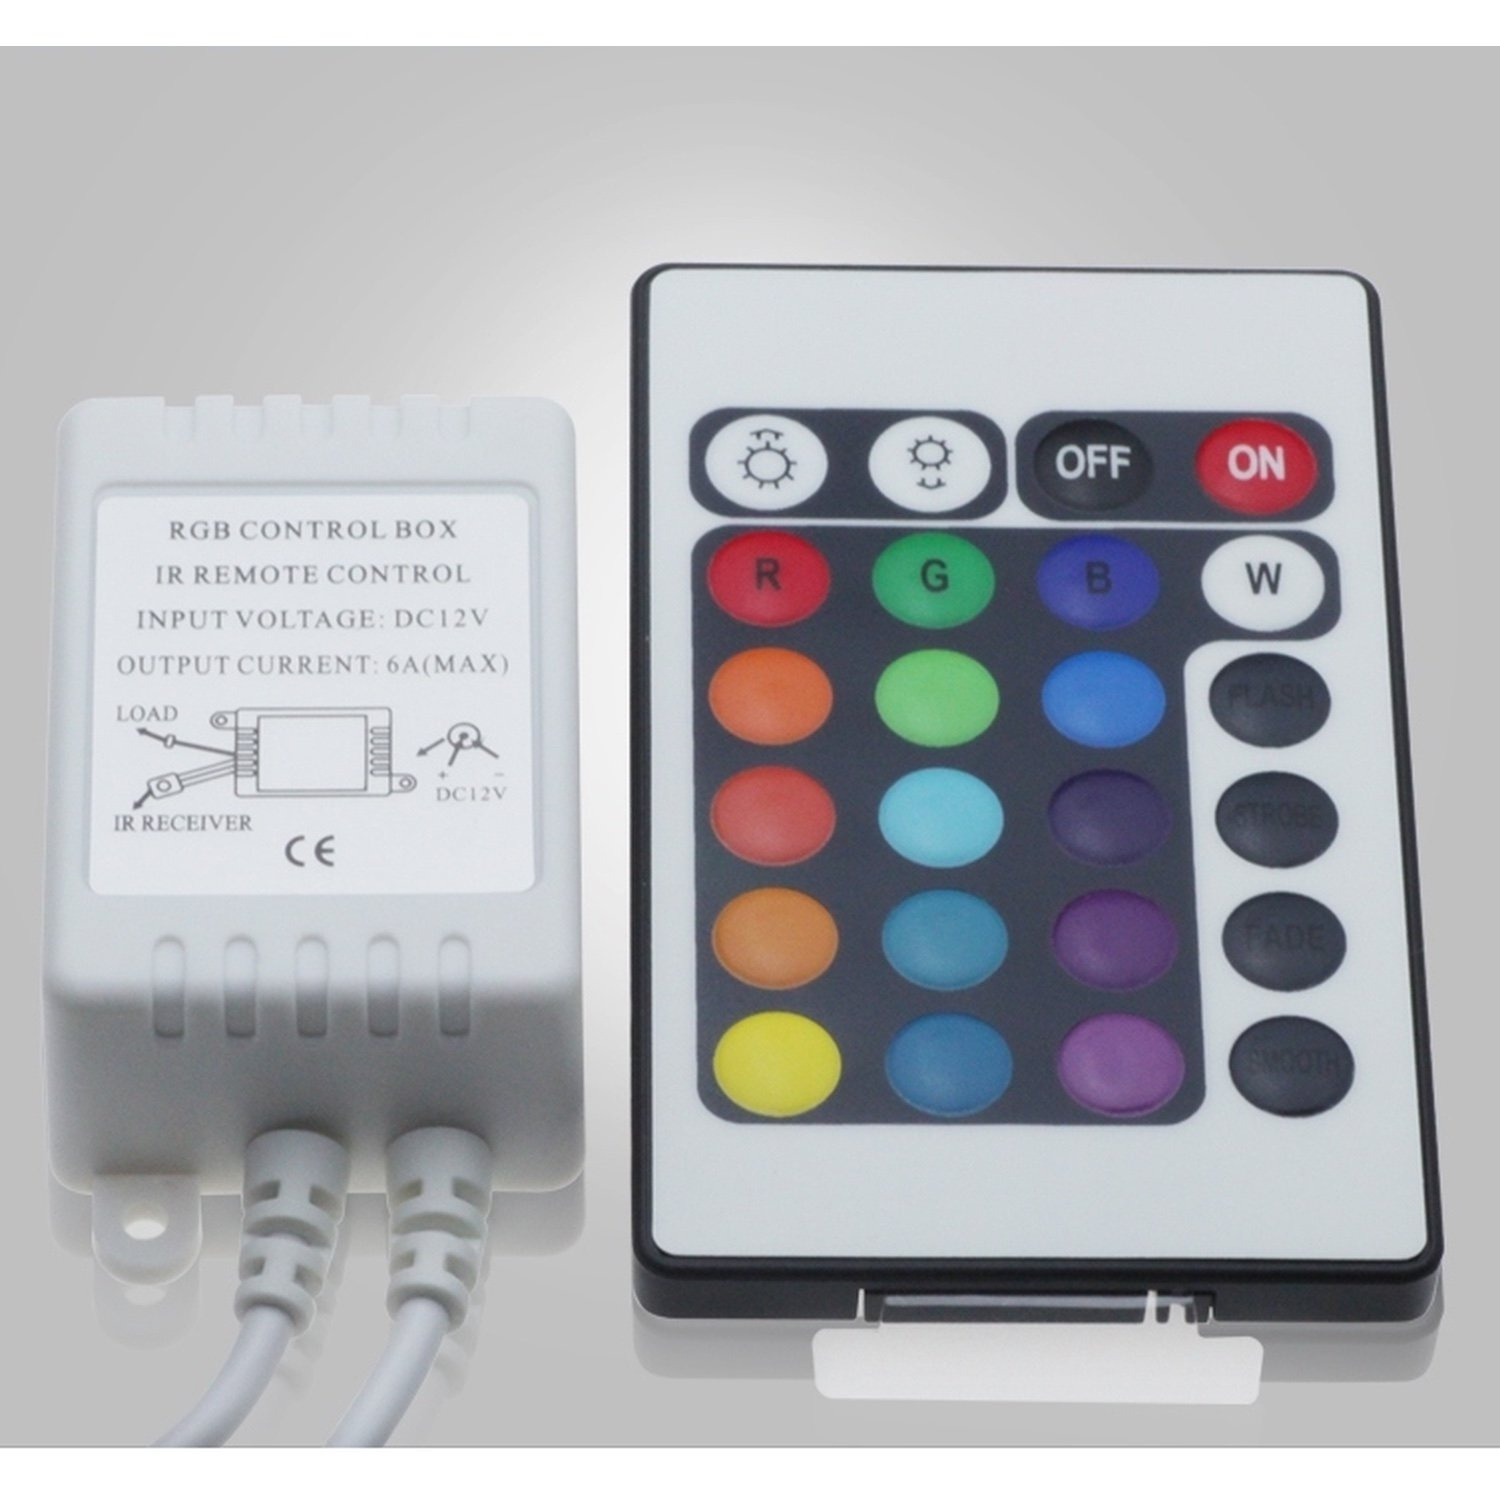 LED Strip Controller RGB Dimmer Remote Controlled GO 24 Buttons